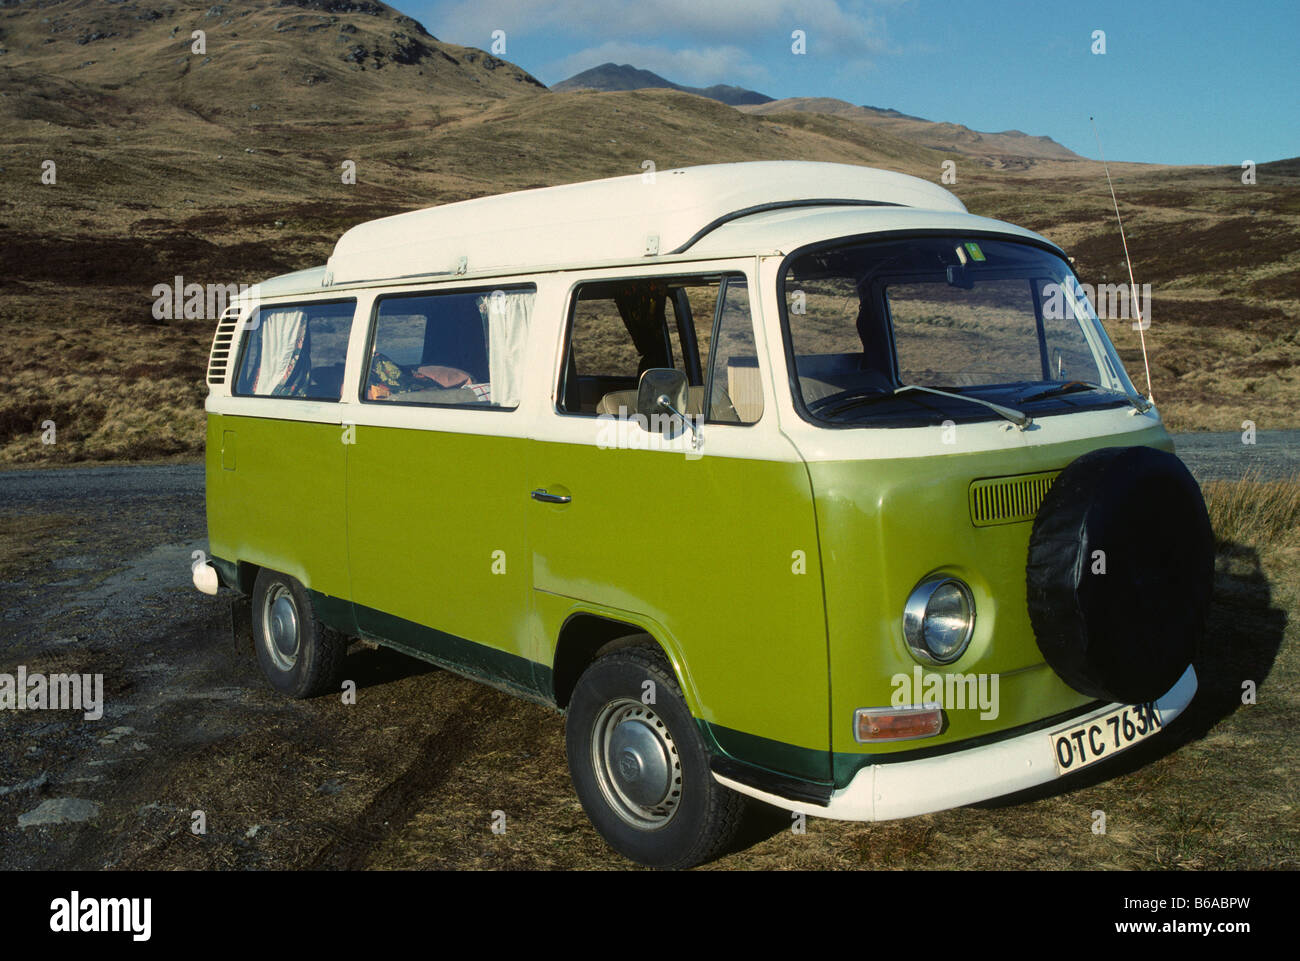 A green VW Type Two camper van.  British registered, right hand drive with side elevating roof - Stock Image